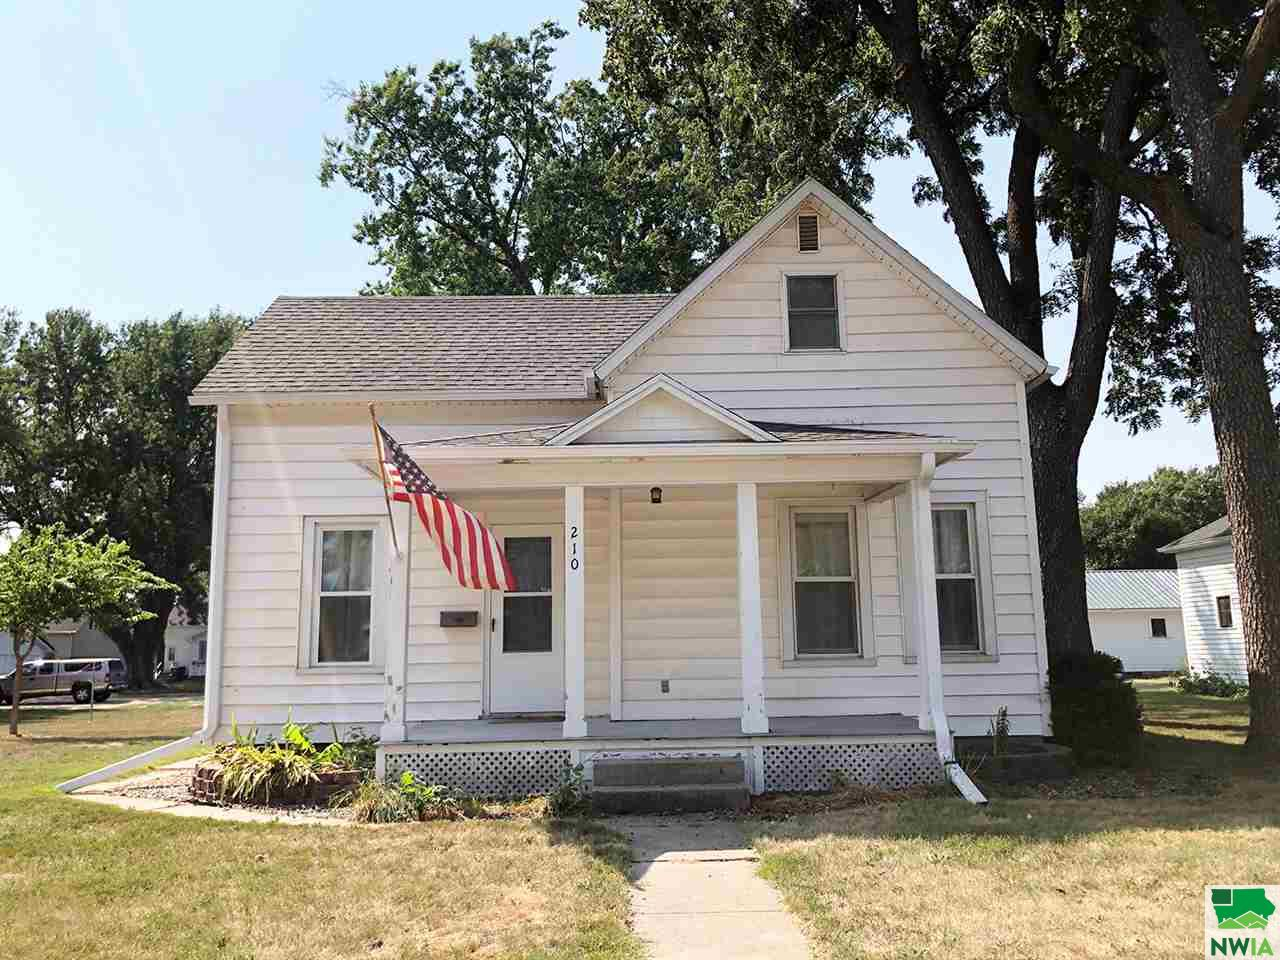 Property for sale at 210 Delaware Ave Sw, Orange City,  Iowa 51041